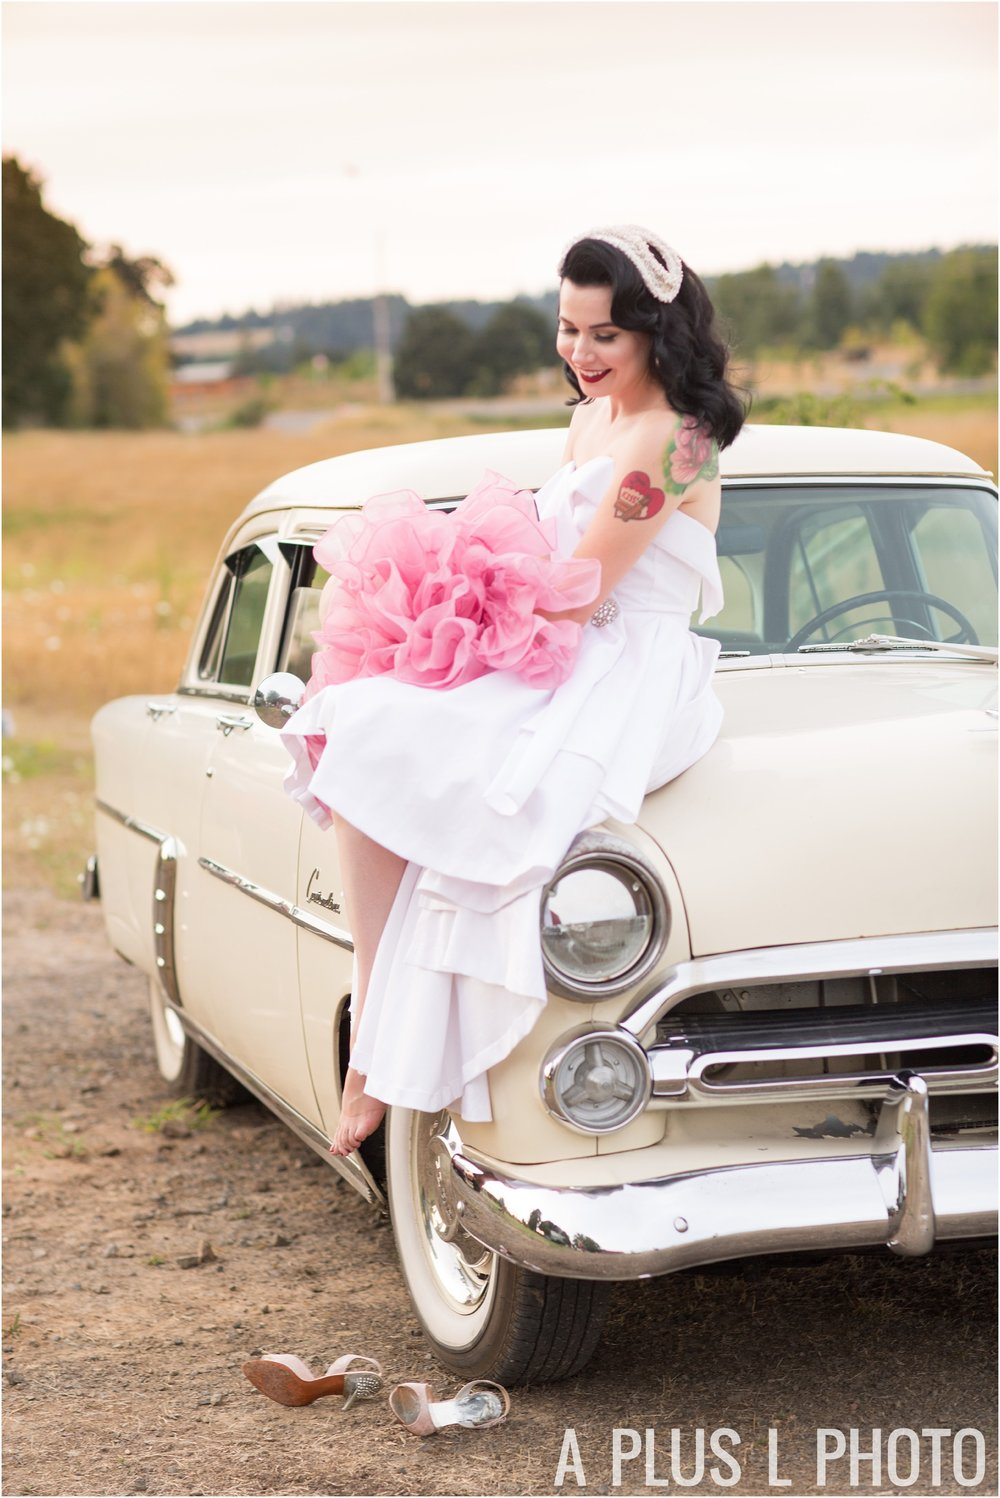 Colorful Rockabilly Wedding - Pin Up Bride on Vintage Car - A Plus L Photo